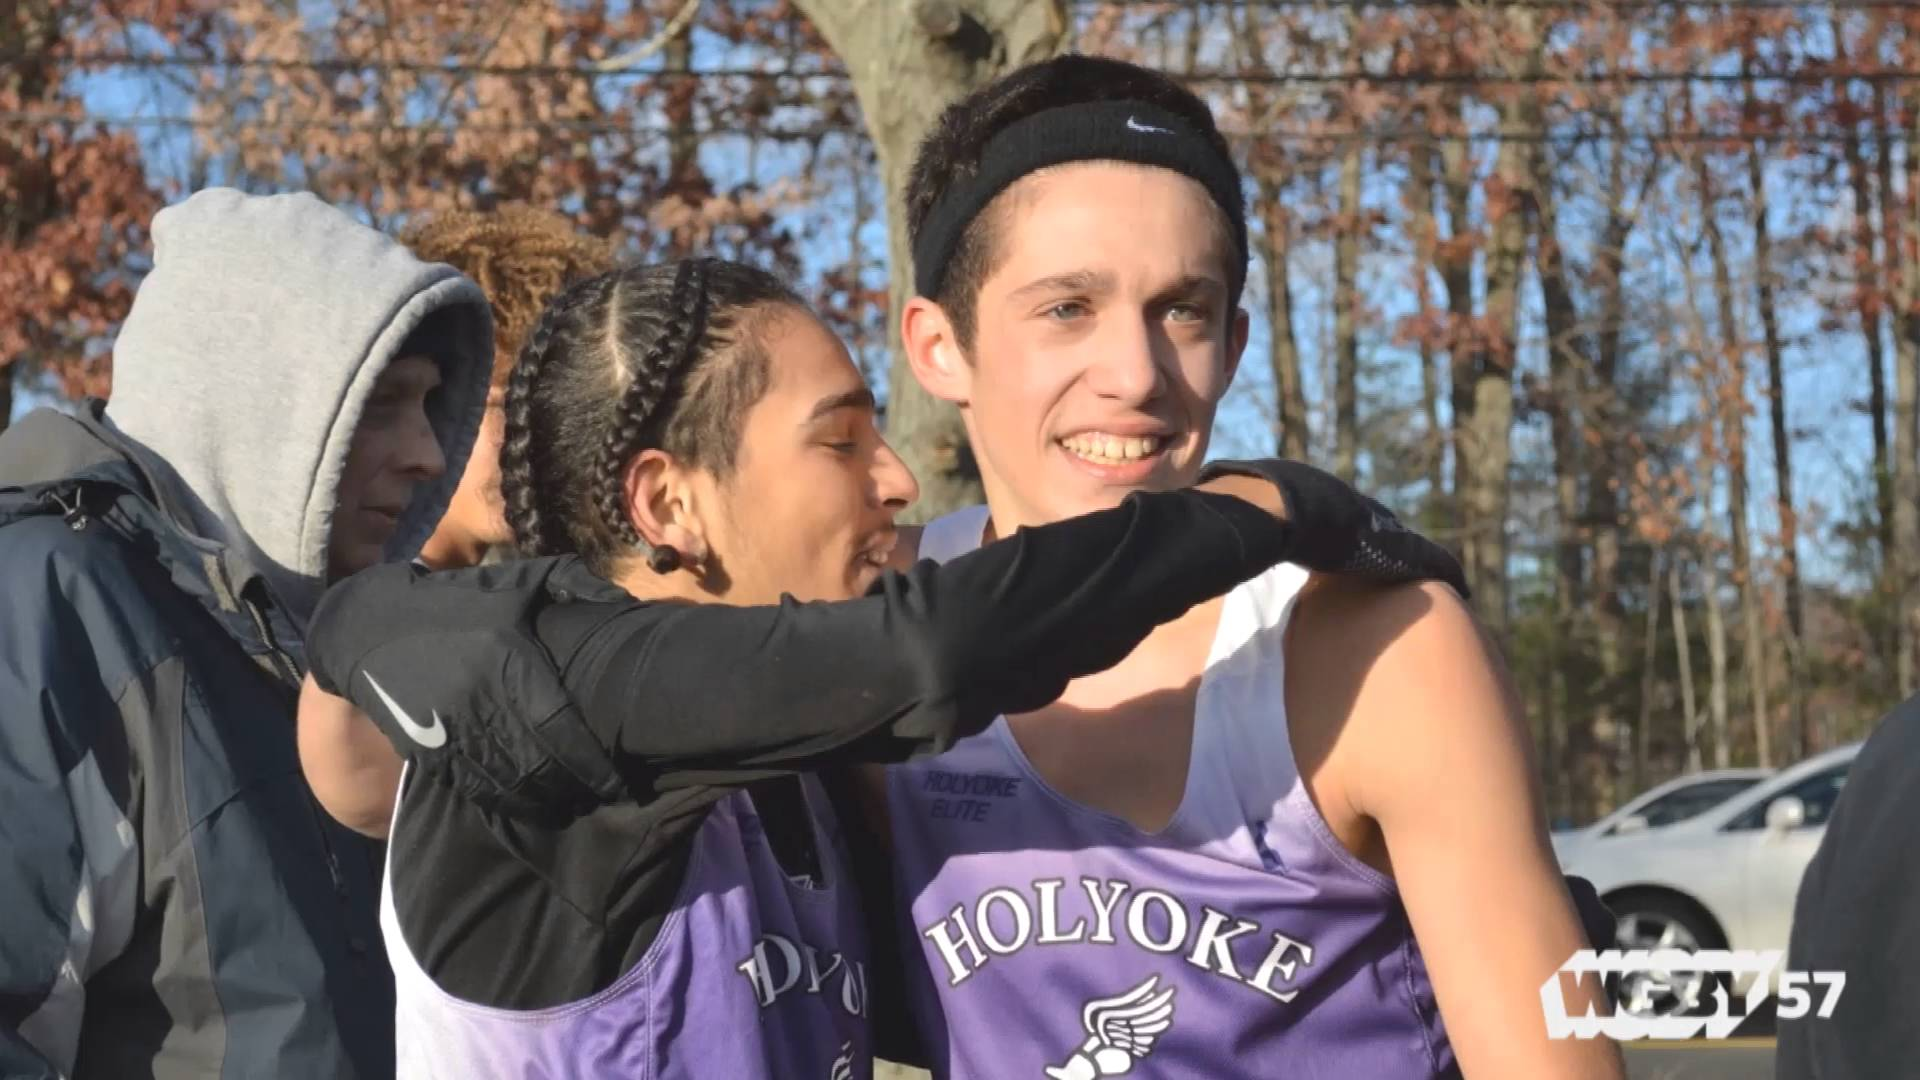 Members of the Holyoke High Cross Country & Track team celebrate, as seen on Connecting Point: American Graduate